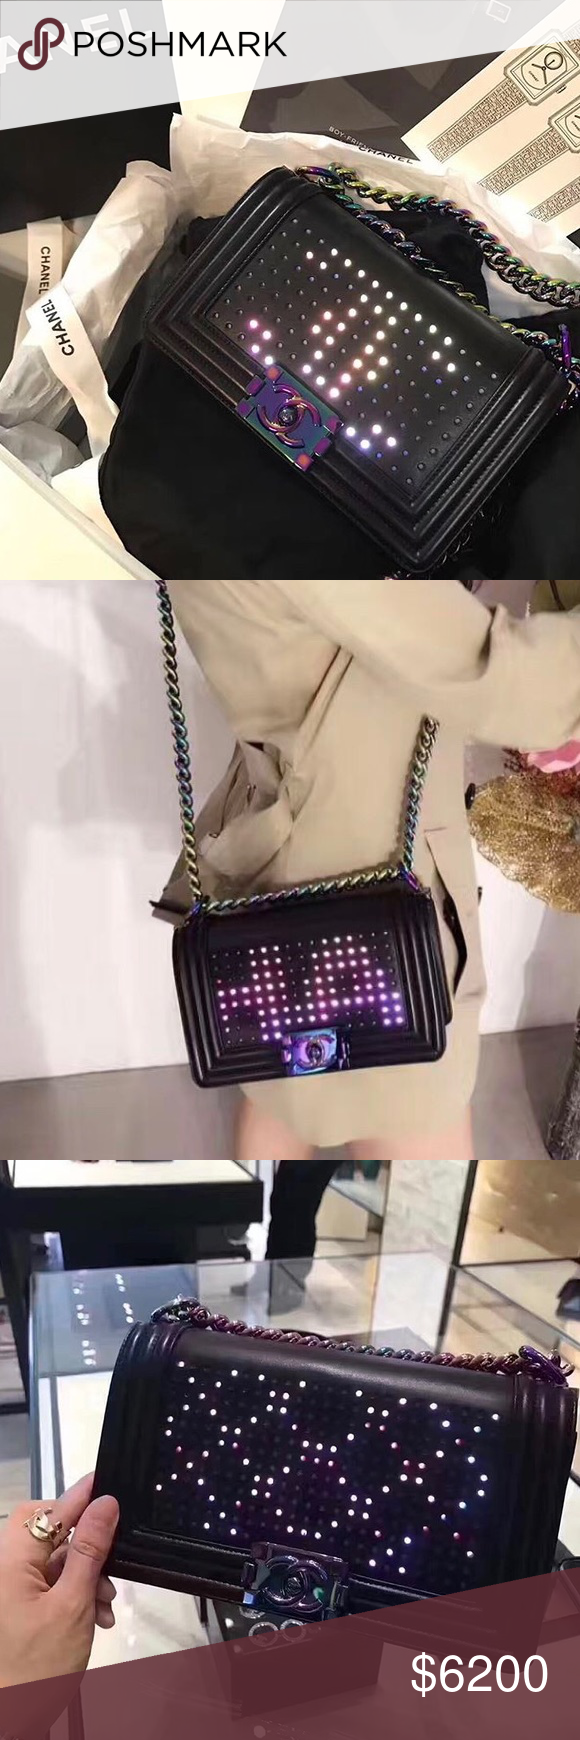 967cc88dfb67 NEW CHANEL LED BOY BAG Brand New! Just Came out and worn once. Not for me  at all but very cool bag! 100% authentic! Price is super firm!